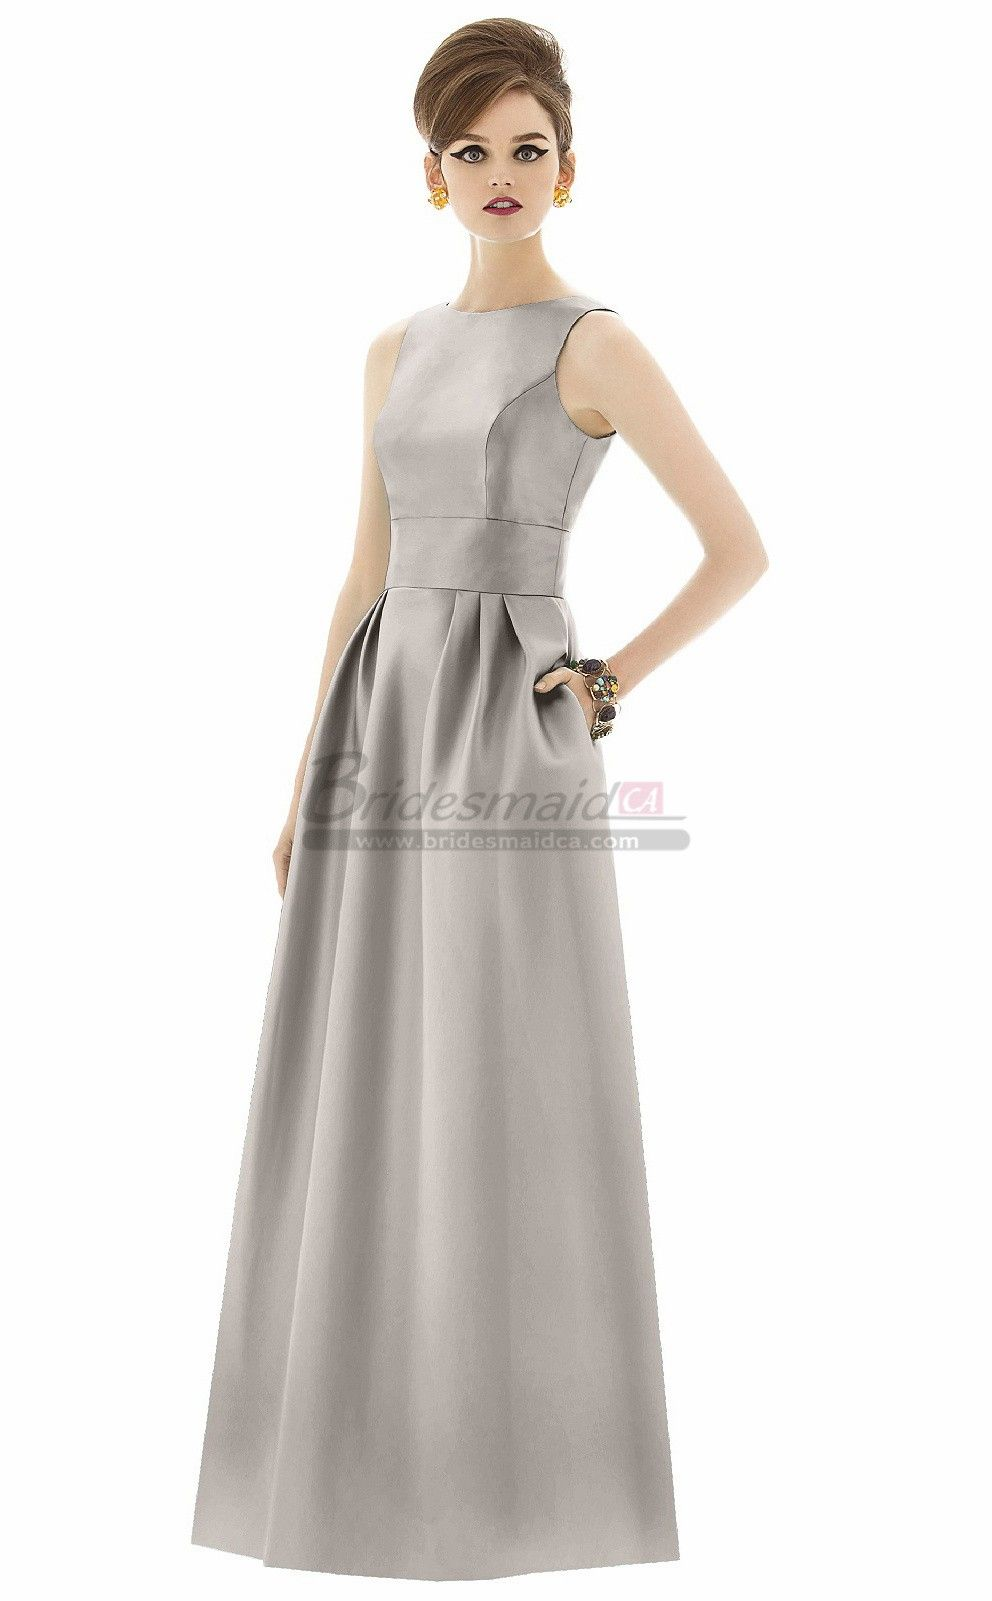 Grey long taffeta bridesmaid dresses wedding dresses pinterest grey long taffeta bridesmaid dresses ombrellifo Image collections